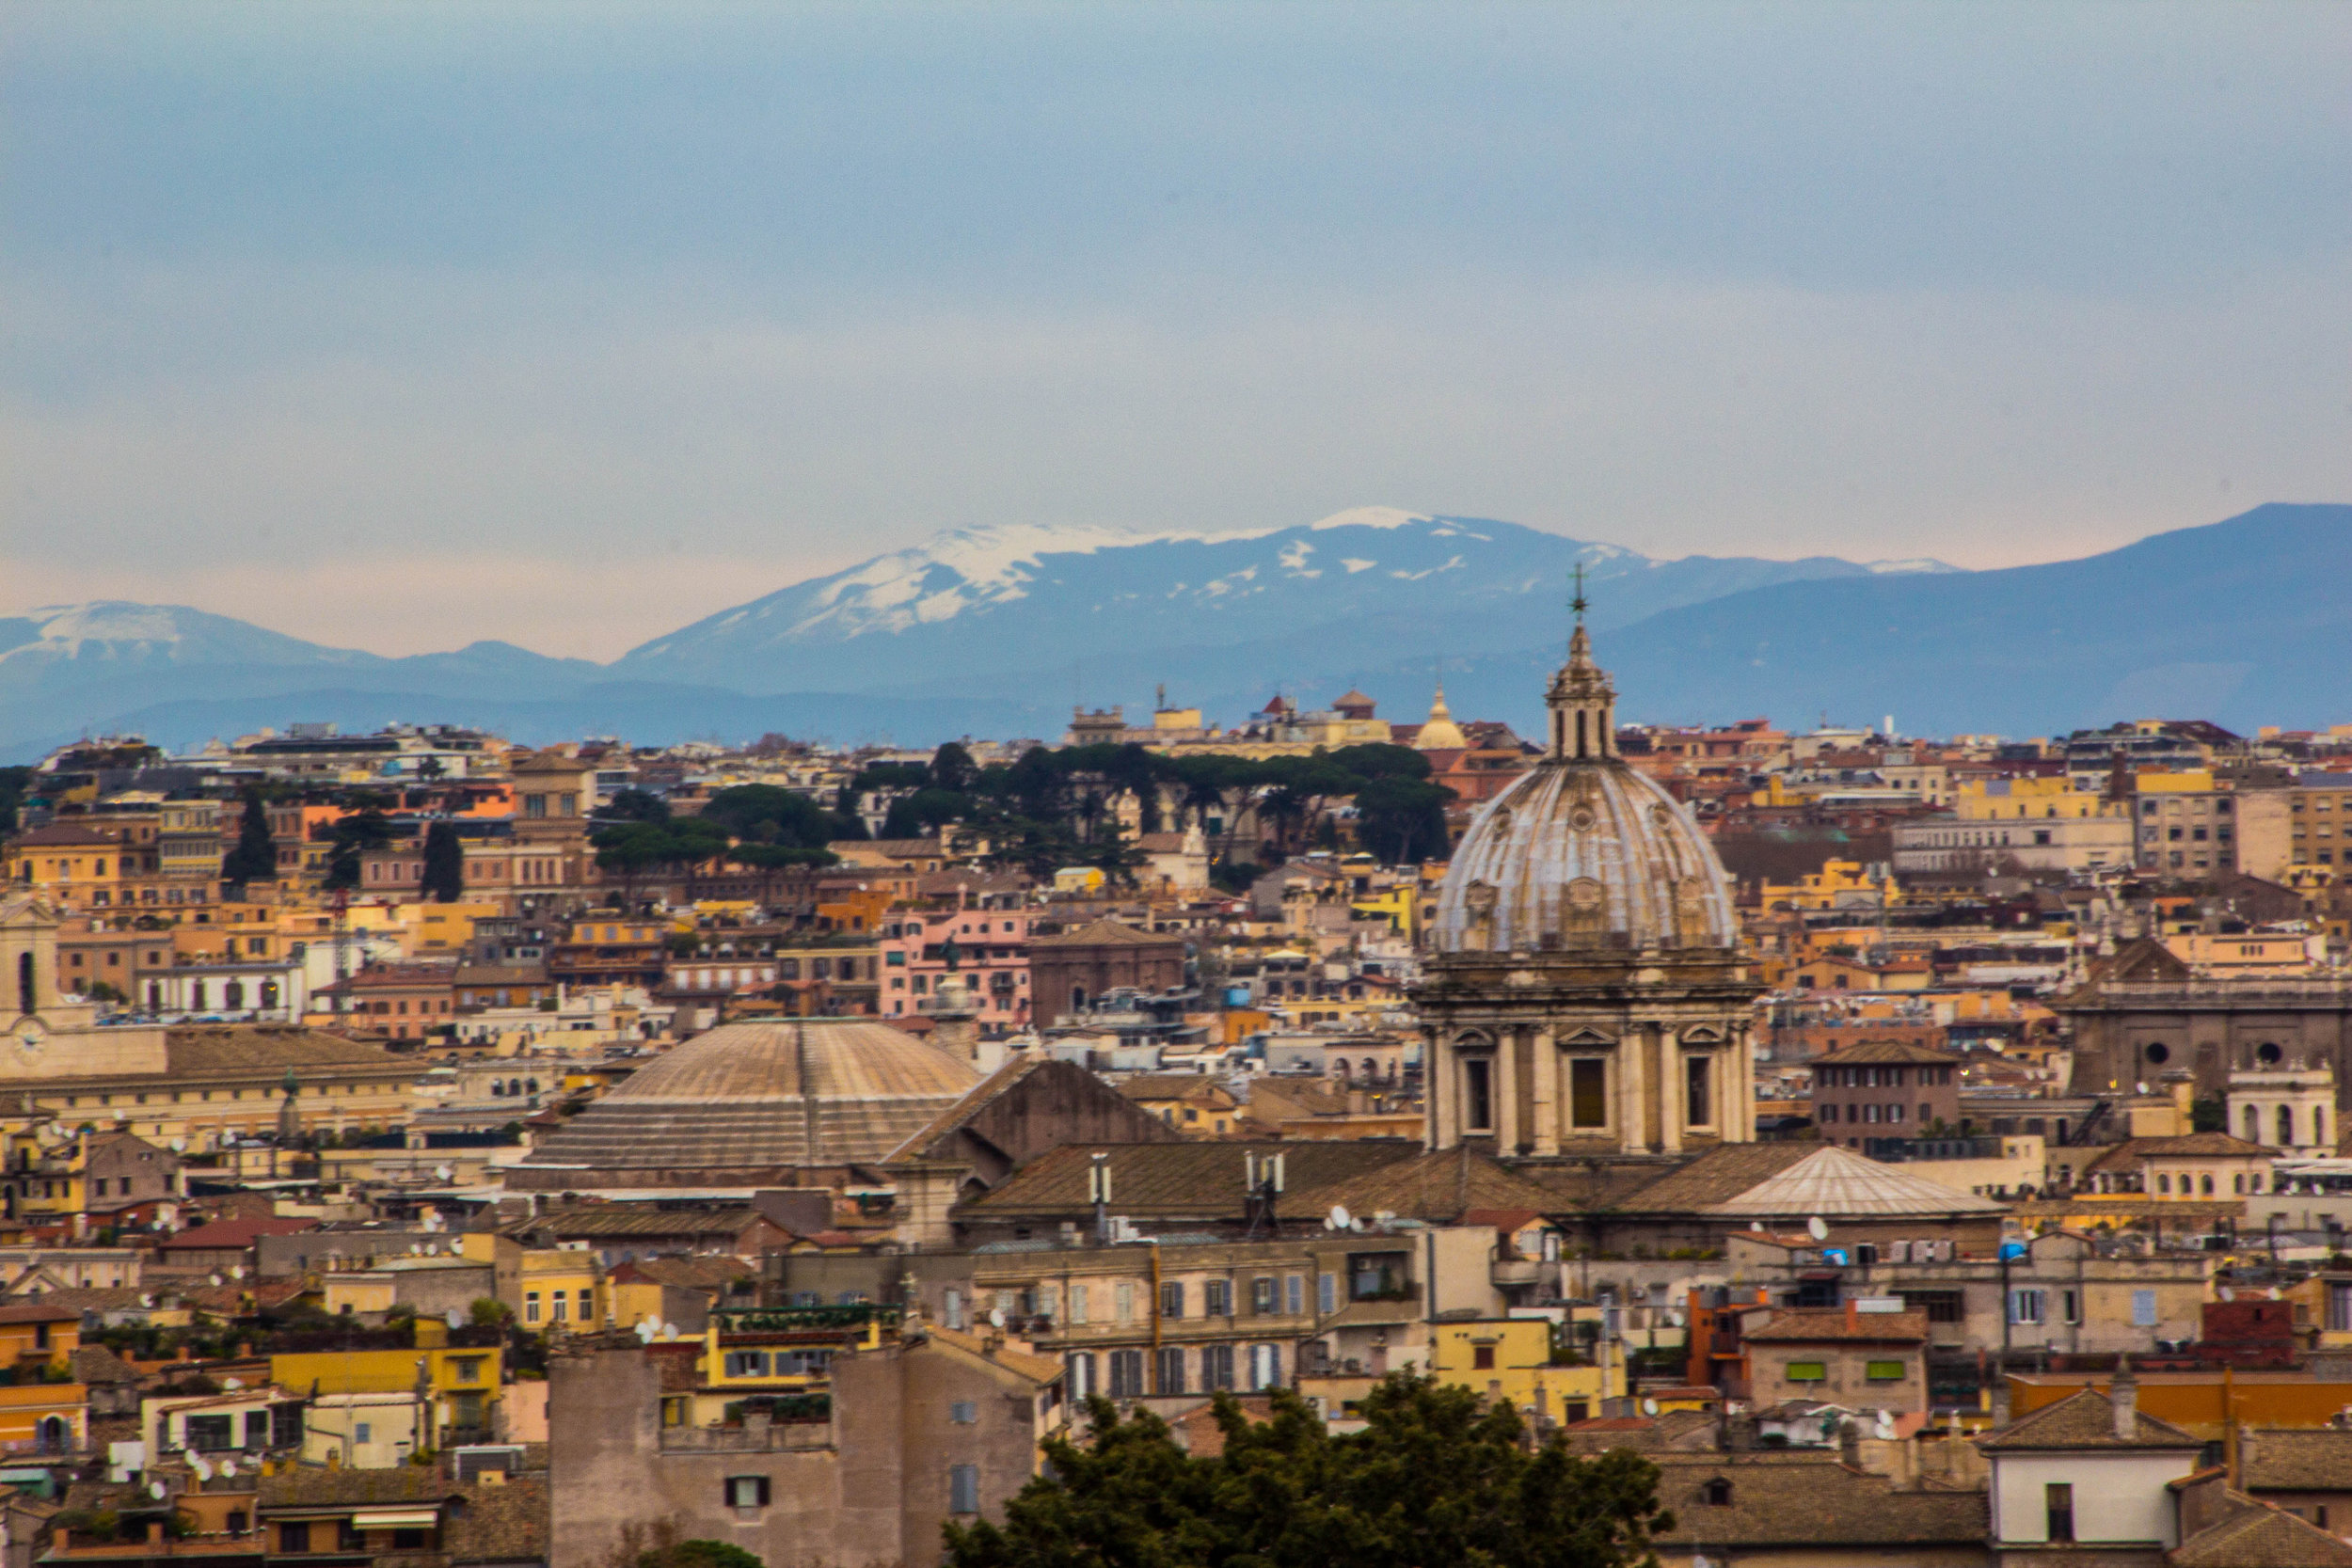 view-over-rome-italy-8-1.jpg